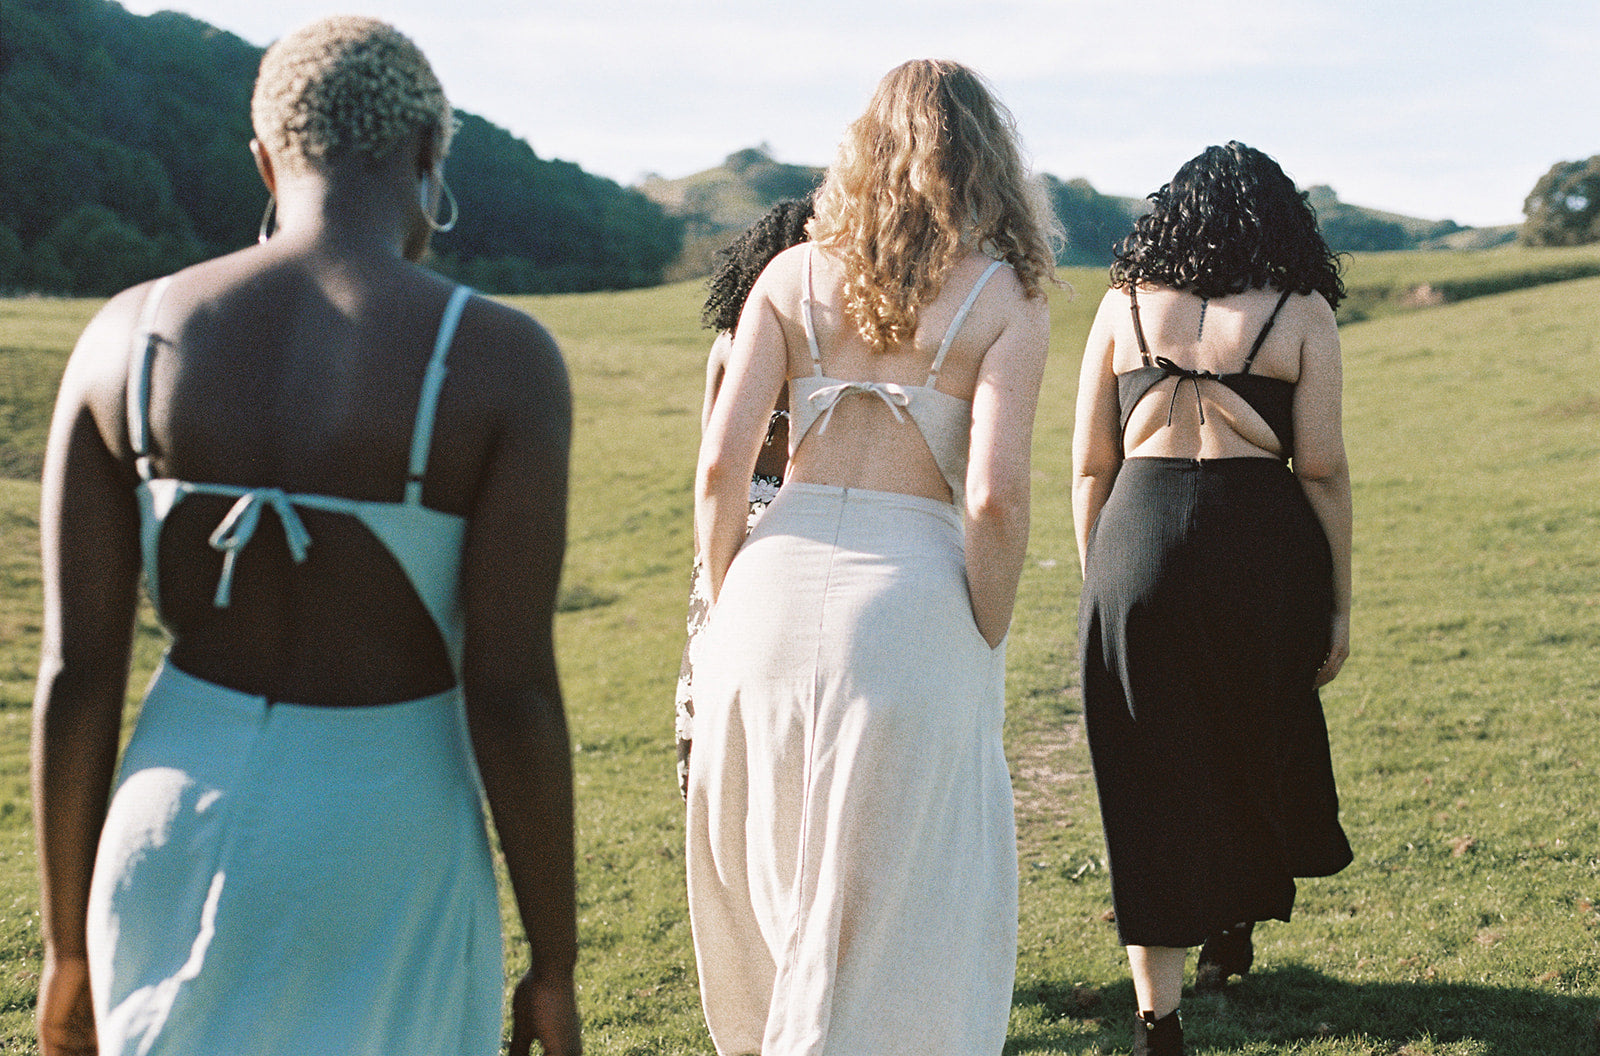 Field Day open back dresses on women walking up a hill